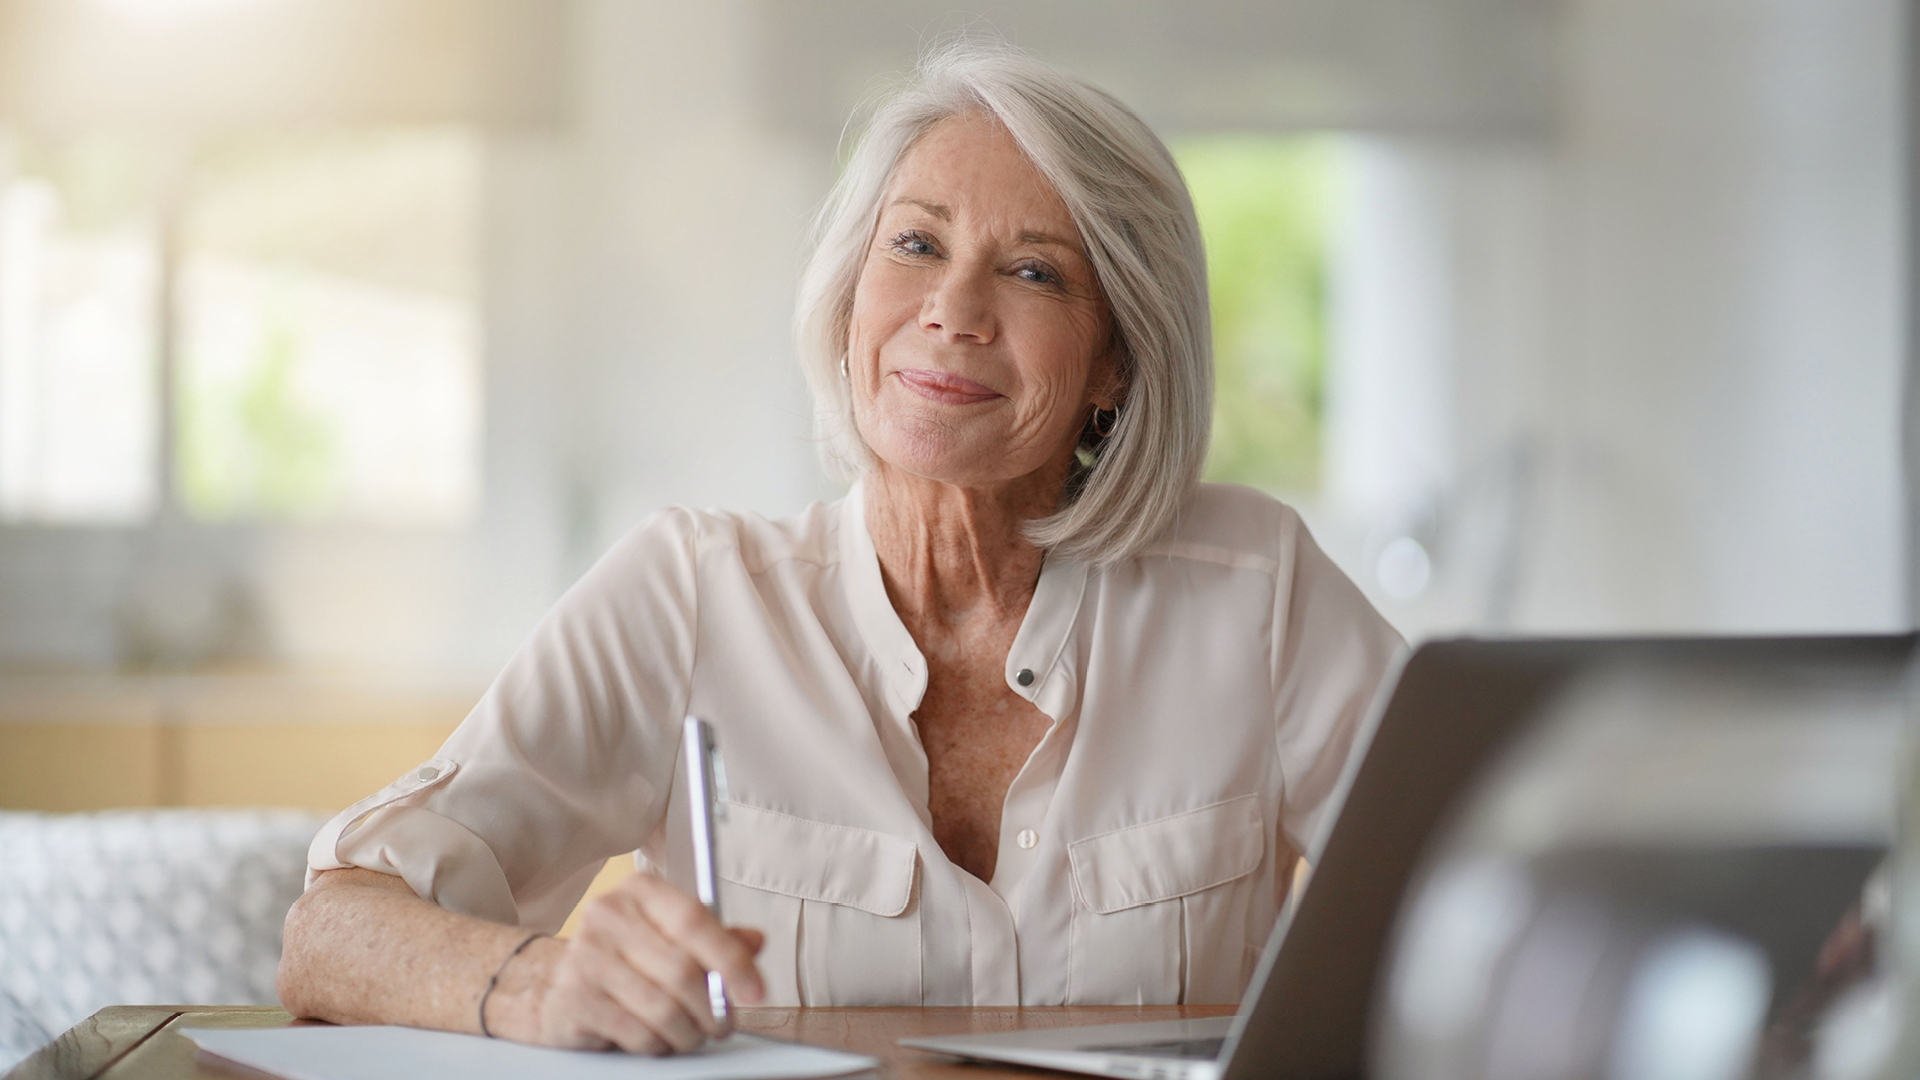 mature woman writing on paper at a desk looking at camera